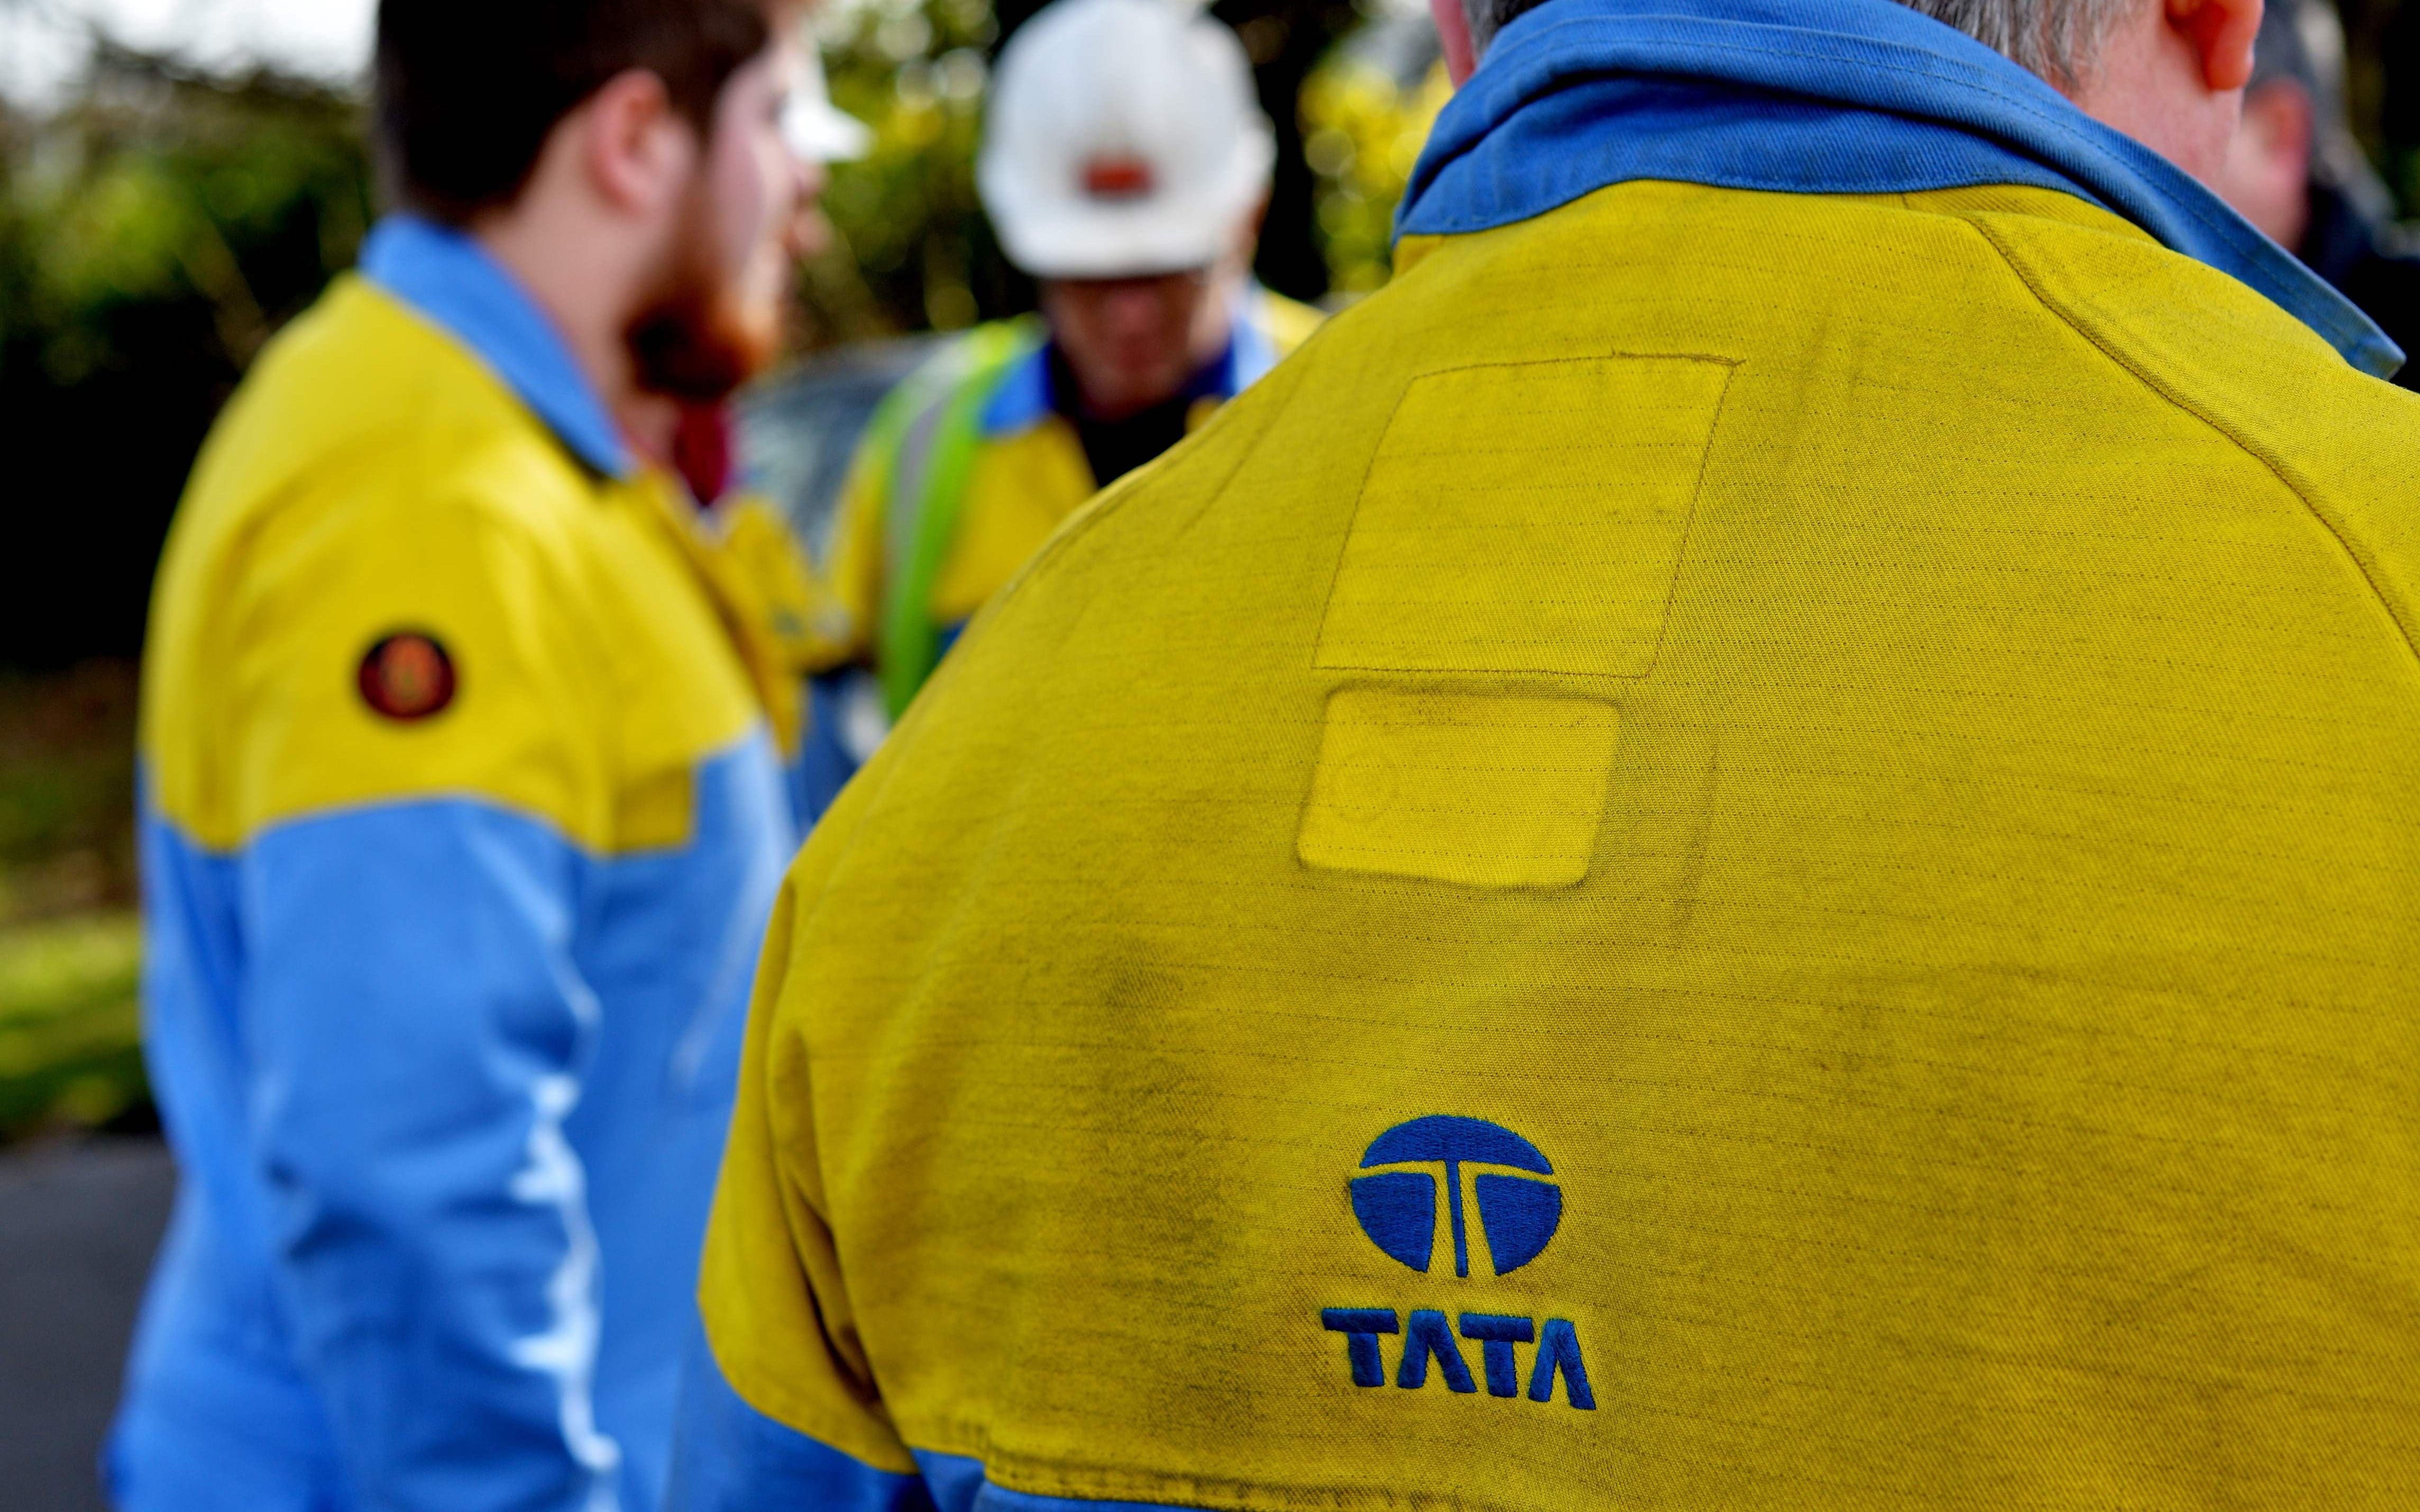 Tata Steel finally frees itself from £15bn UK pension liability